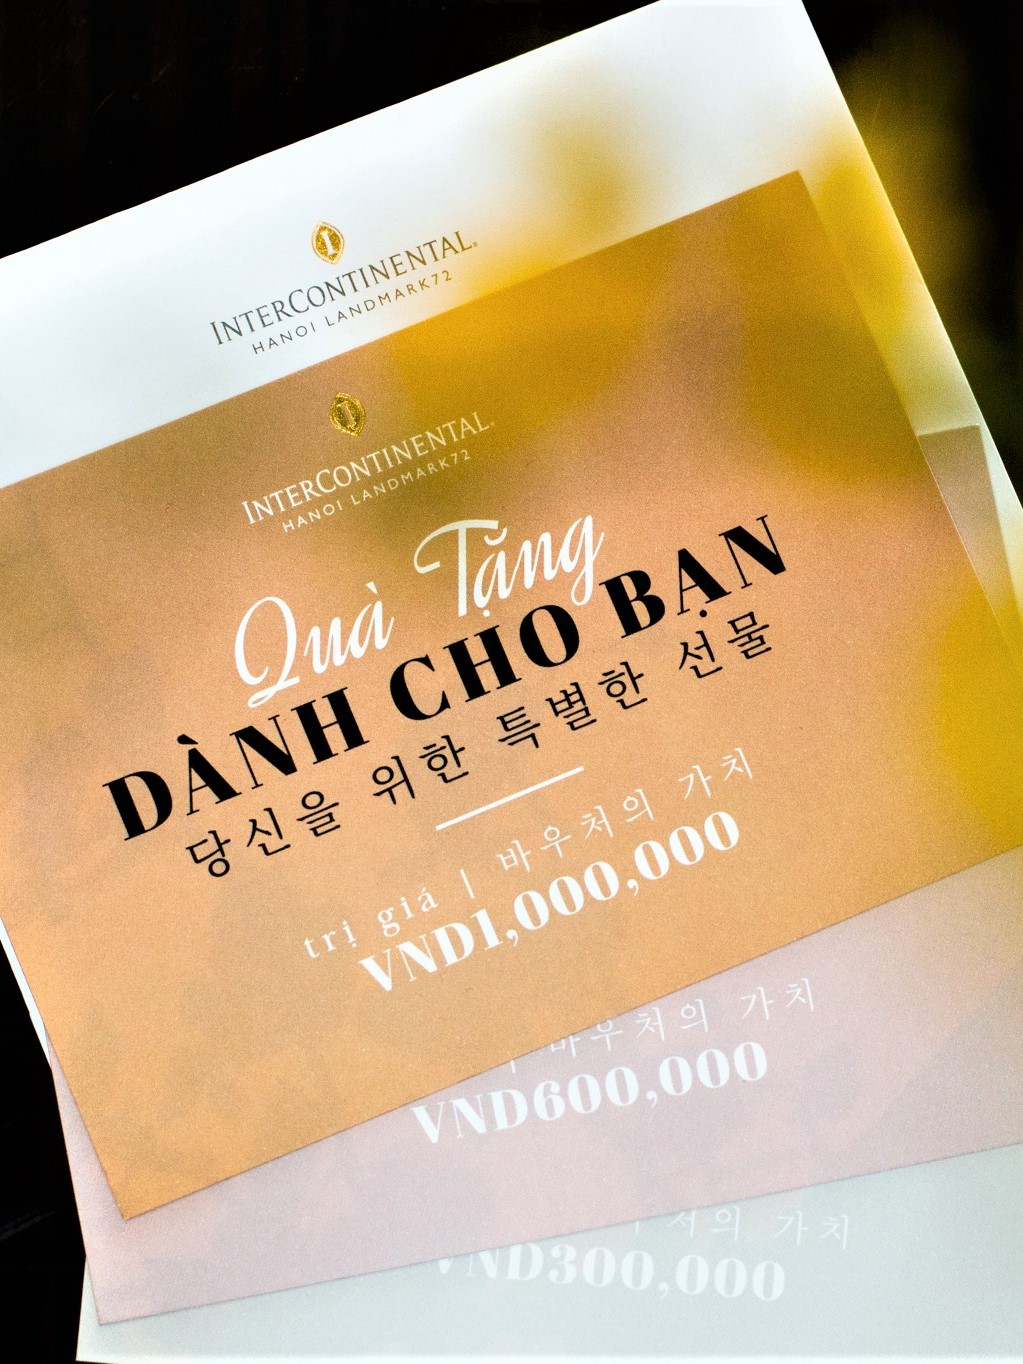 intercontinental hanoi dining gift card with discount